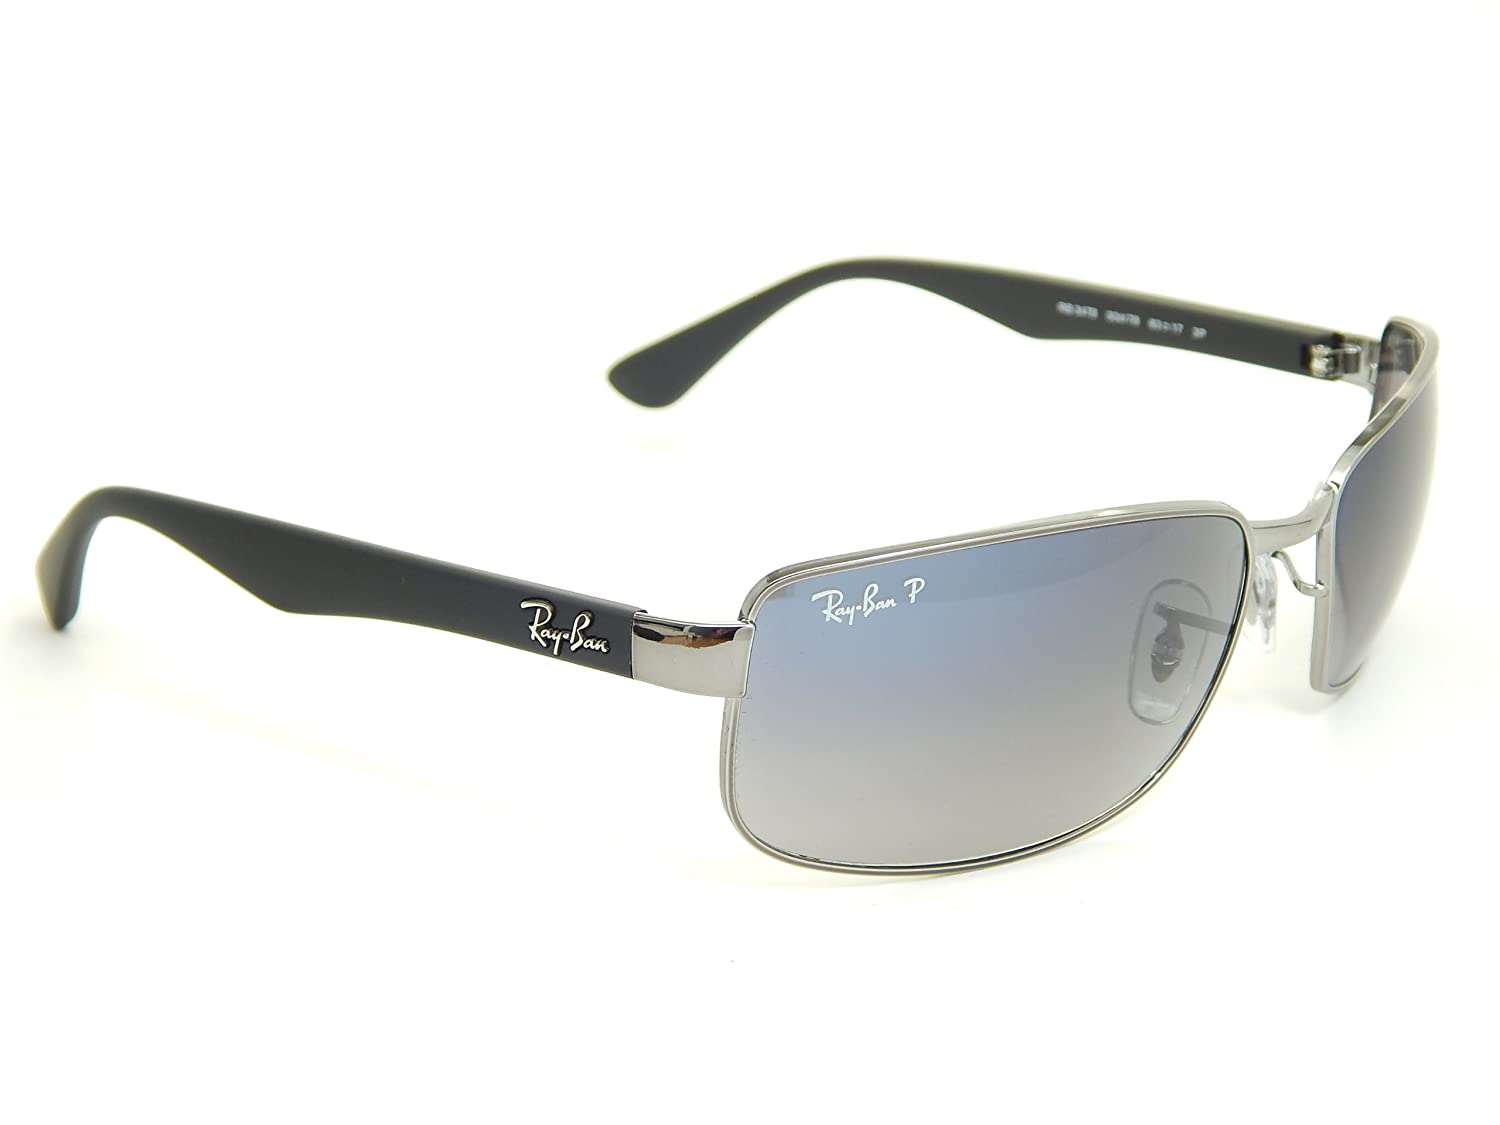 Amazon.com: New Ray Ban RB3478 004/78 Gunmetal/Polar Blue ...